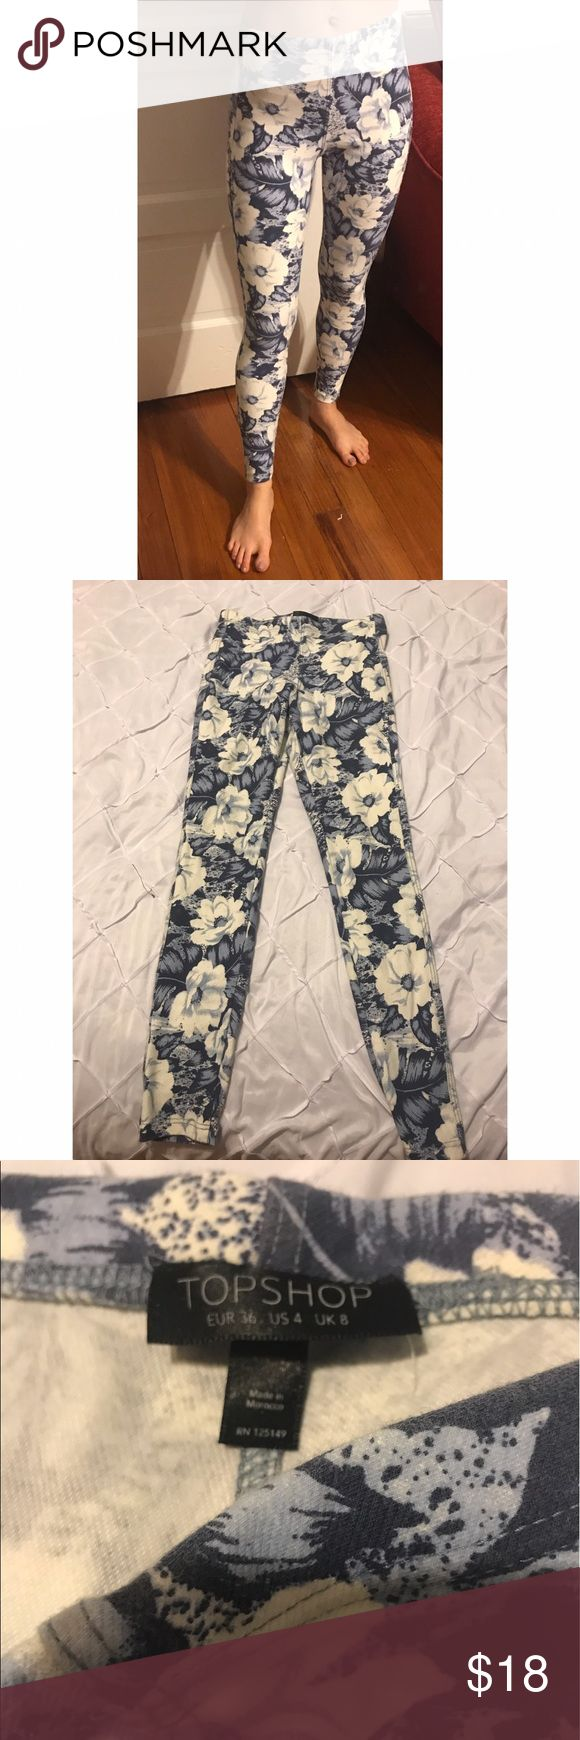 Topshop Leggings These are a pair of topshop leggings. They have a gorgeous flower design on them and are a size 4. There is a small stain on them photographed in the last photo. Good condition. Topshop Pants Leggings